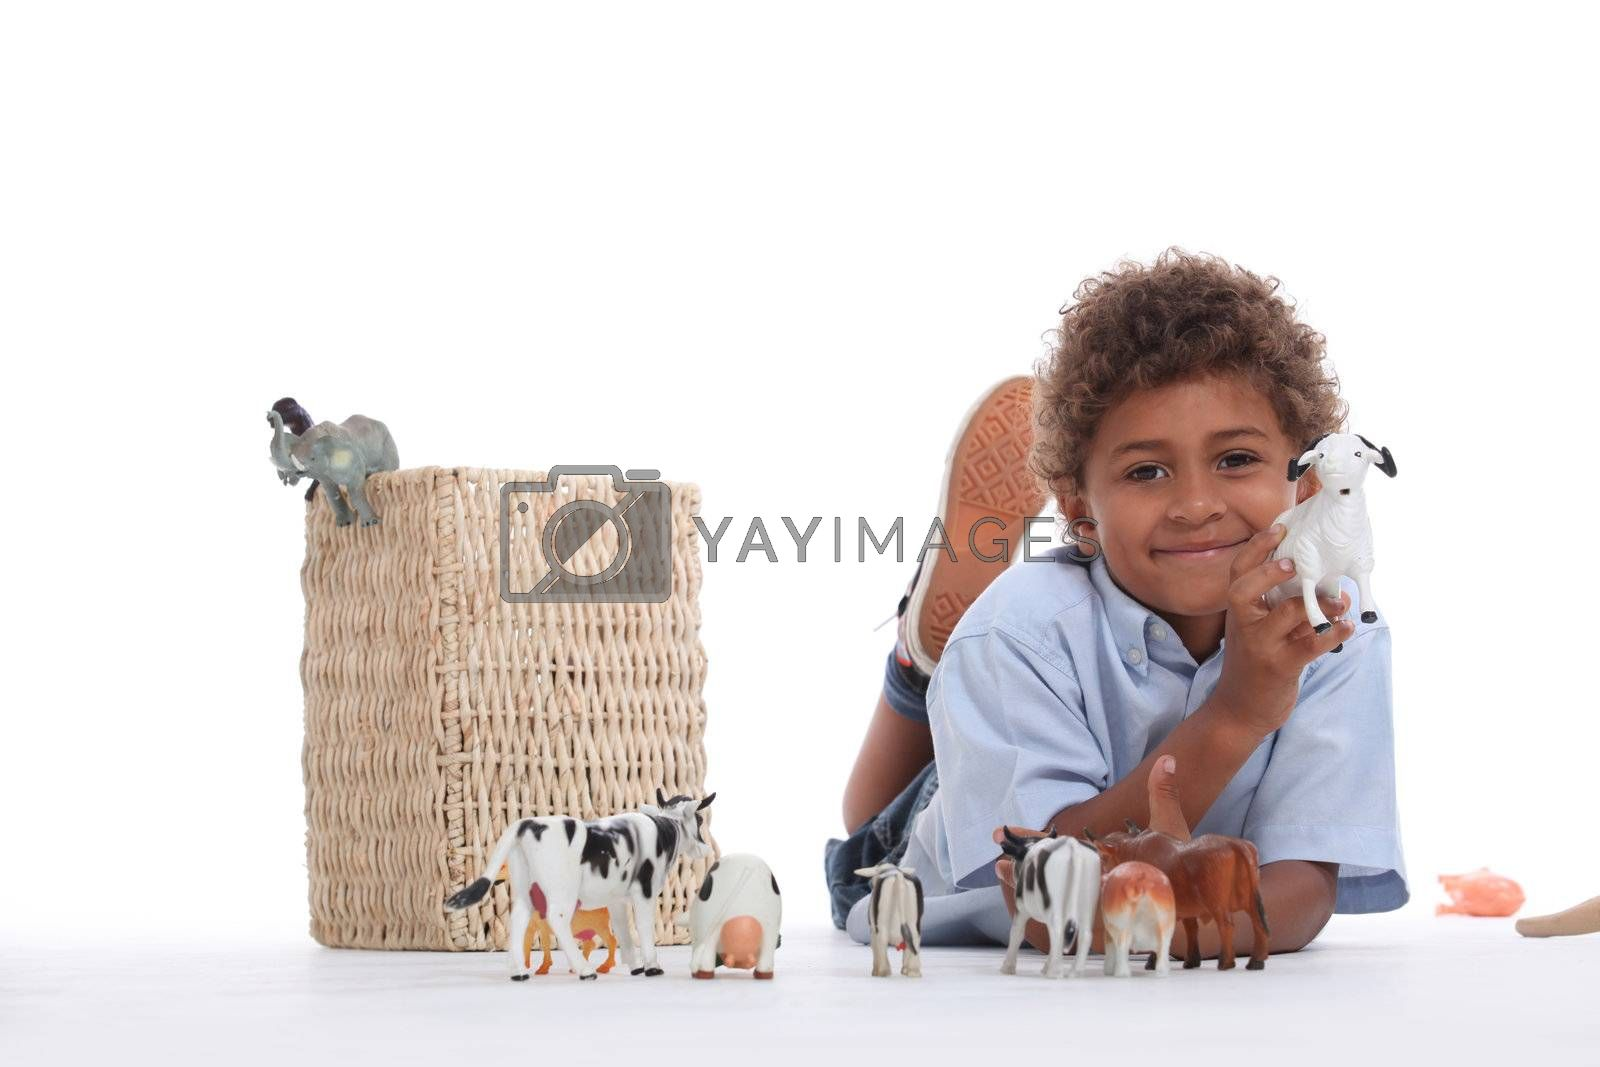 Little boy playing with plastic toy animals